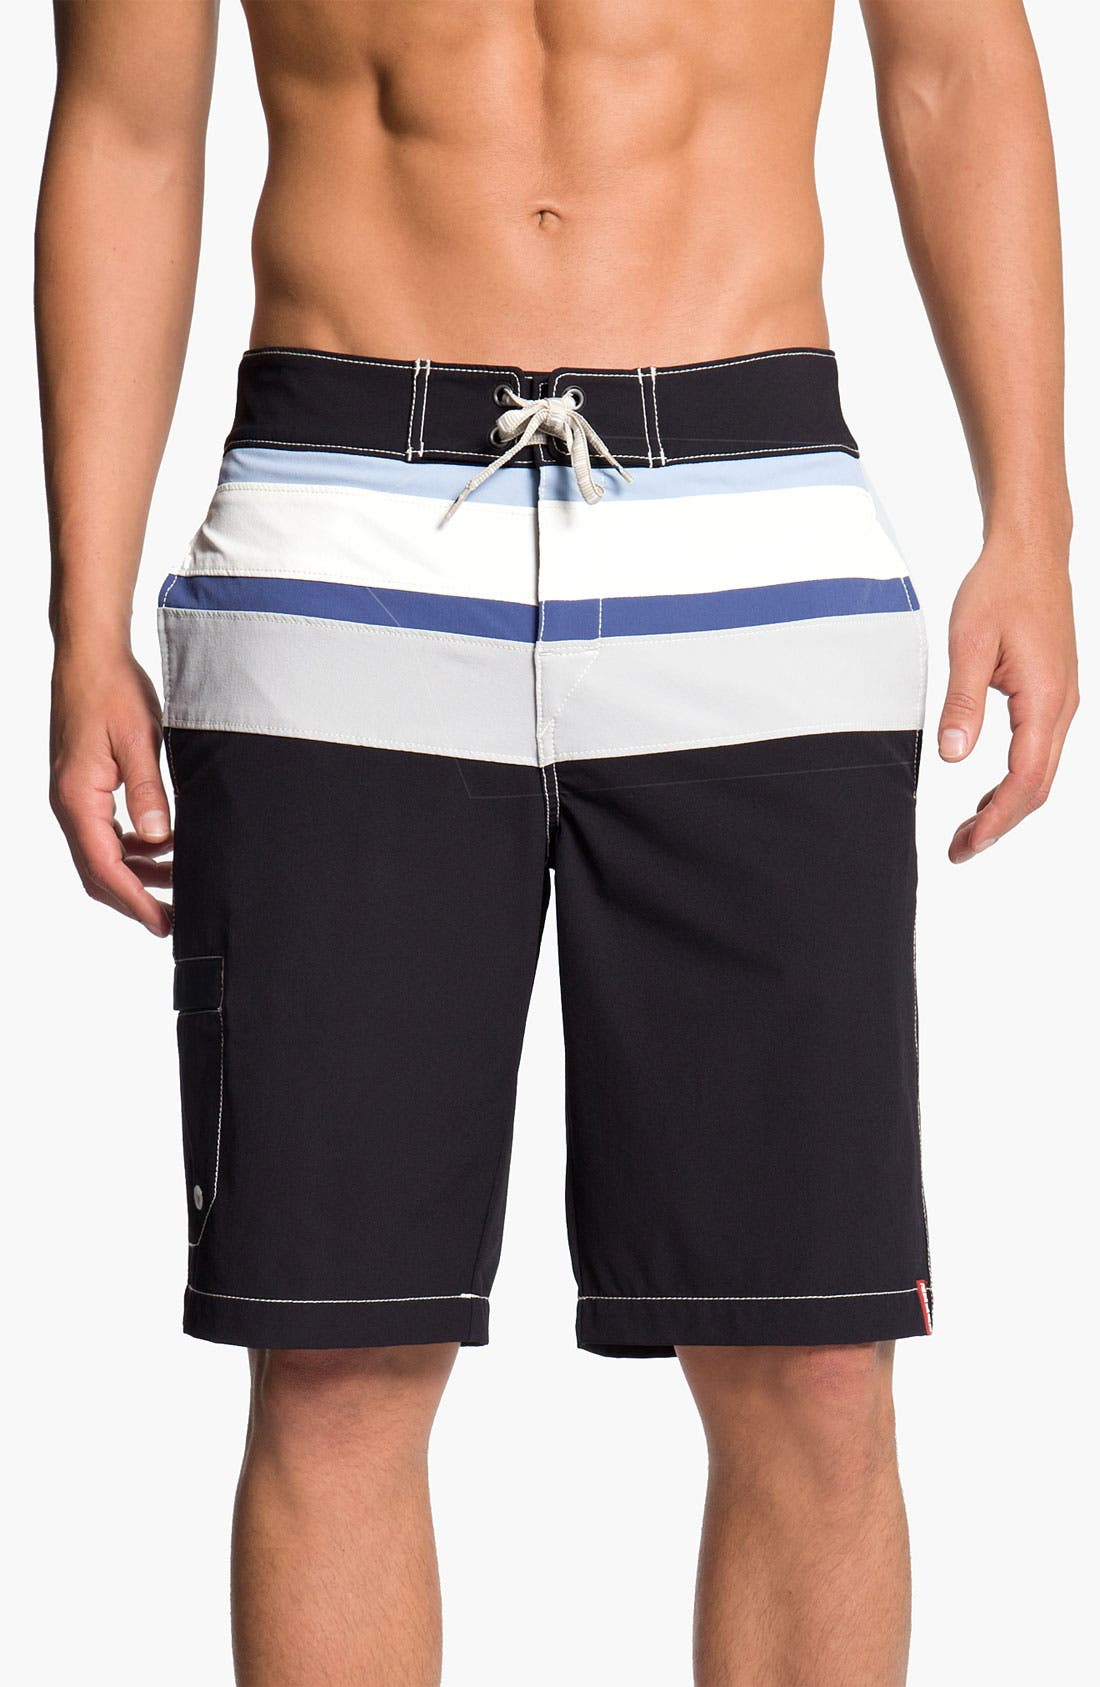 Alternate Image 1 Selected - Tommy Bahama 'Ocean Tech' Board Shorts